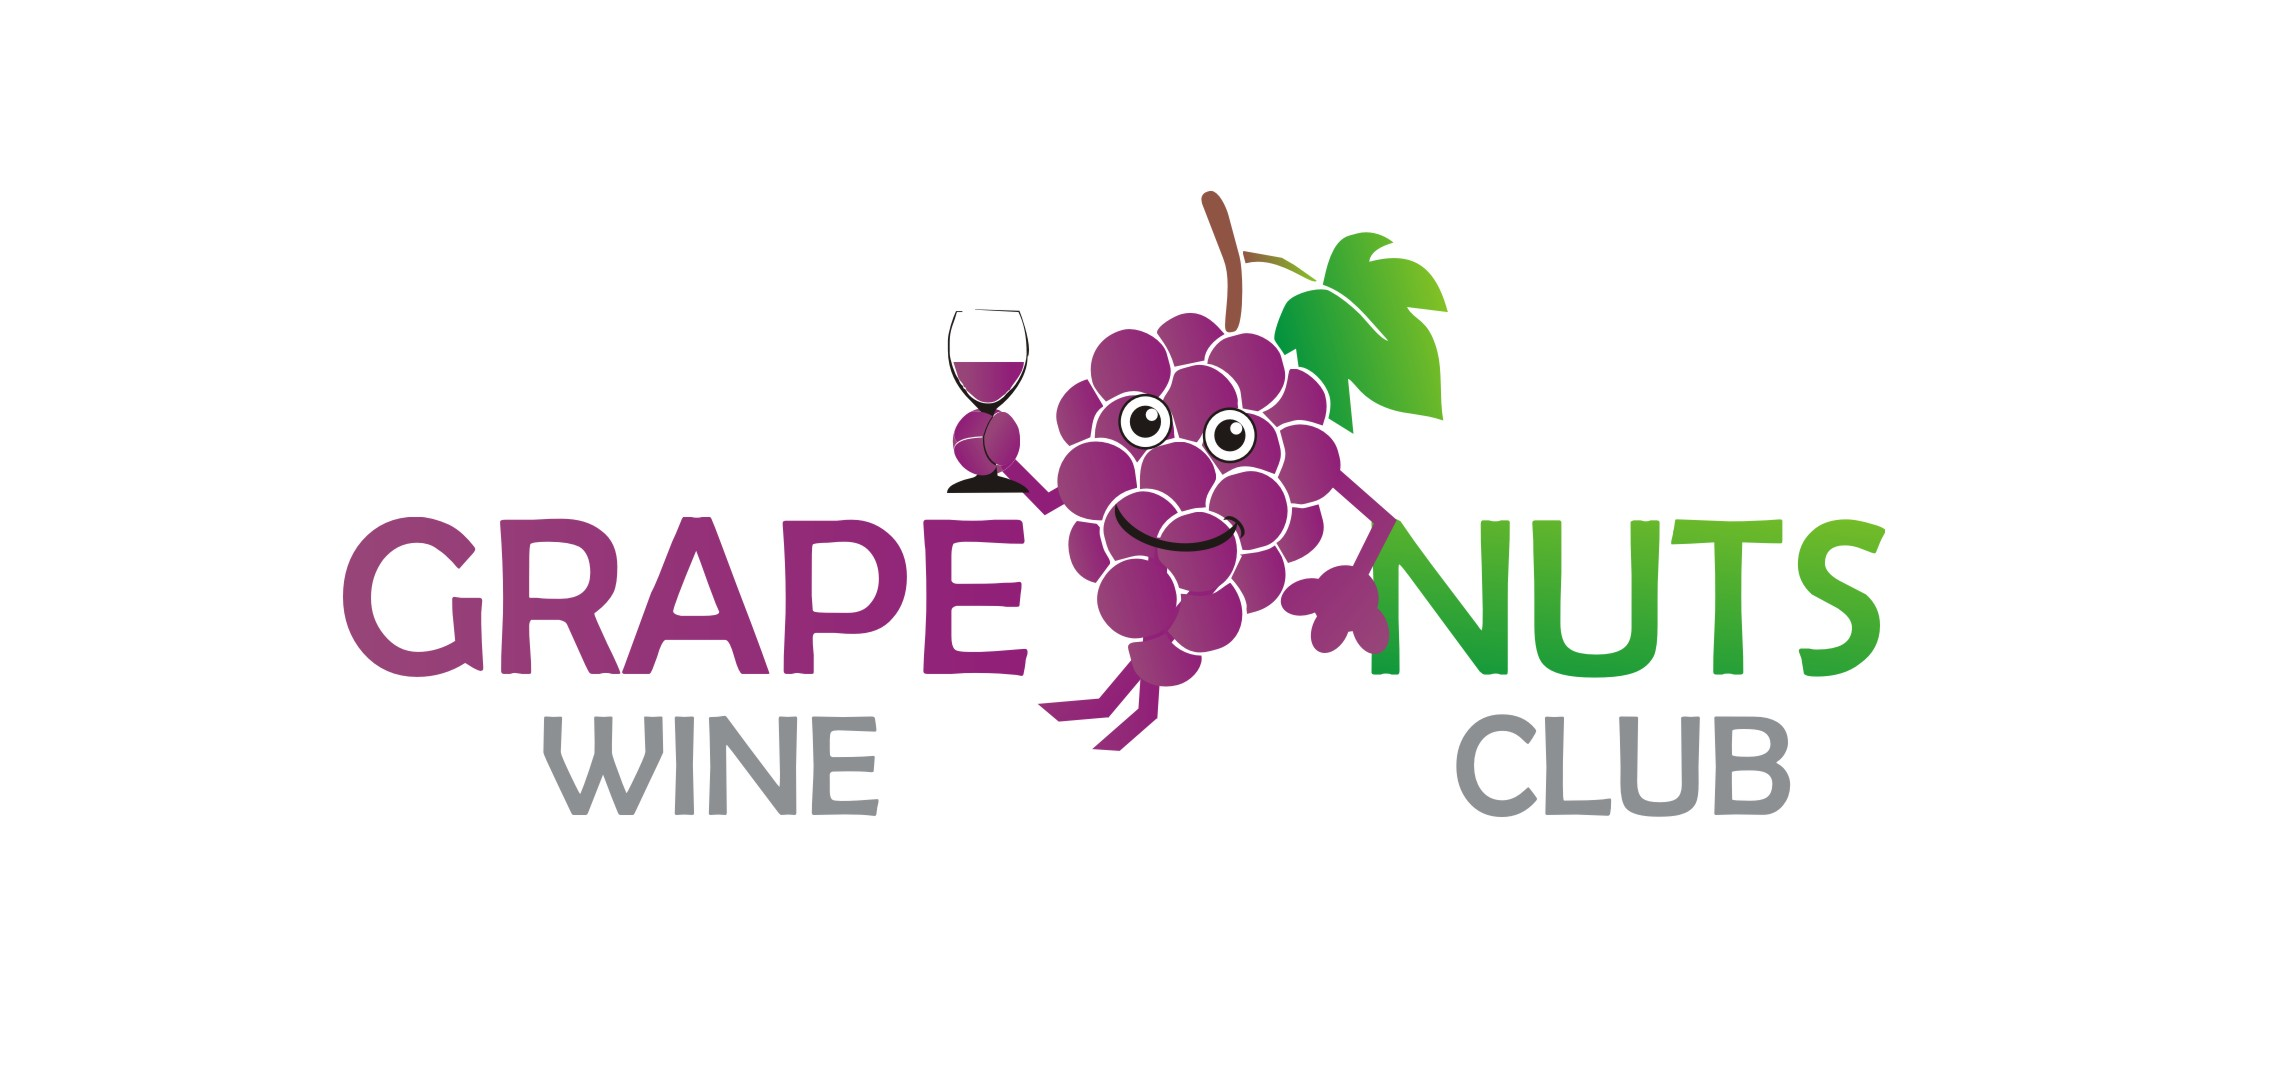 Logo Design by Yuda Hermawan - Entry No. 53 in the Logo Design Contest Artistic Logo Design for Grape Nuts Wine Club.